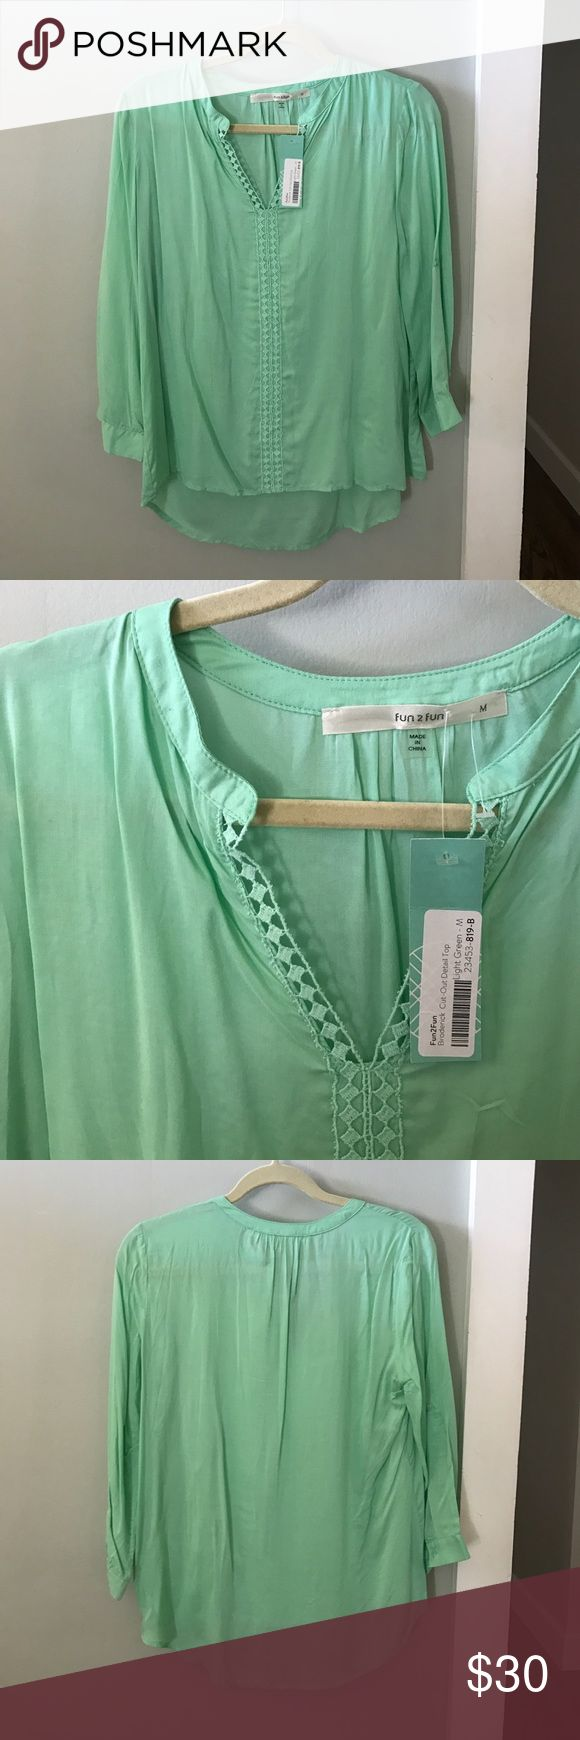 🆕 Mint Blouse Perfect for spring! New with tags. Bought from Stitch Fix. Perfect condition! fun2fun Tops Blouses